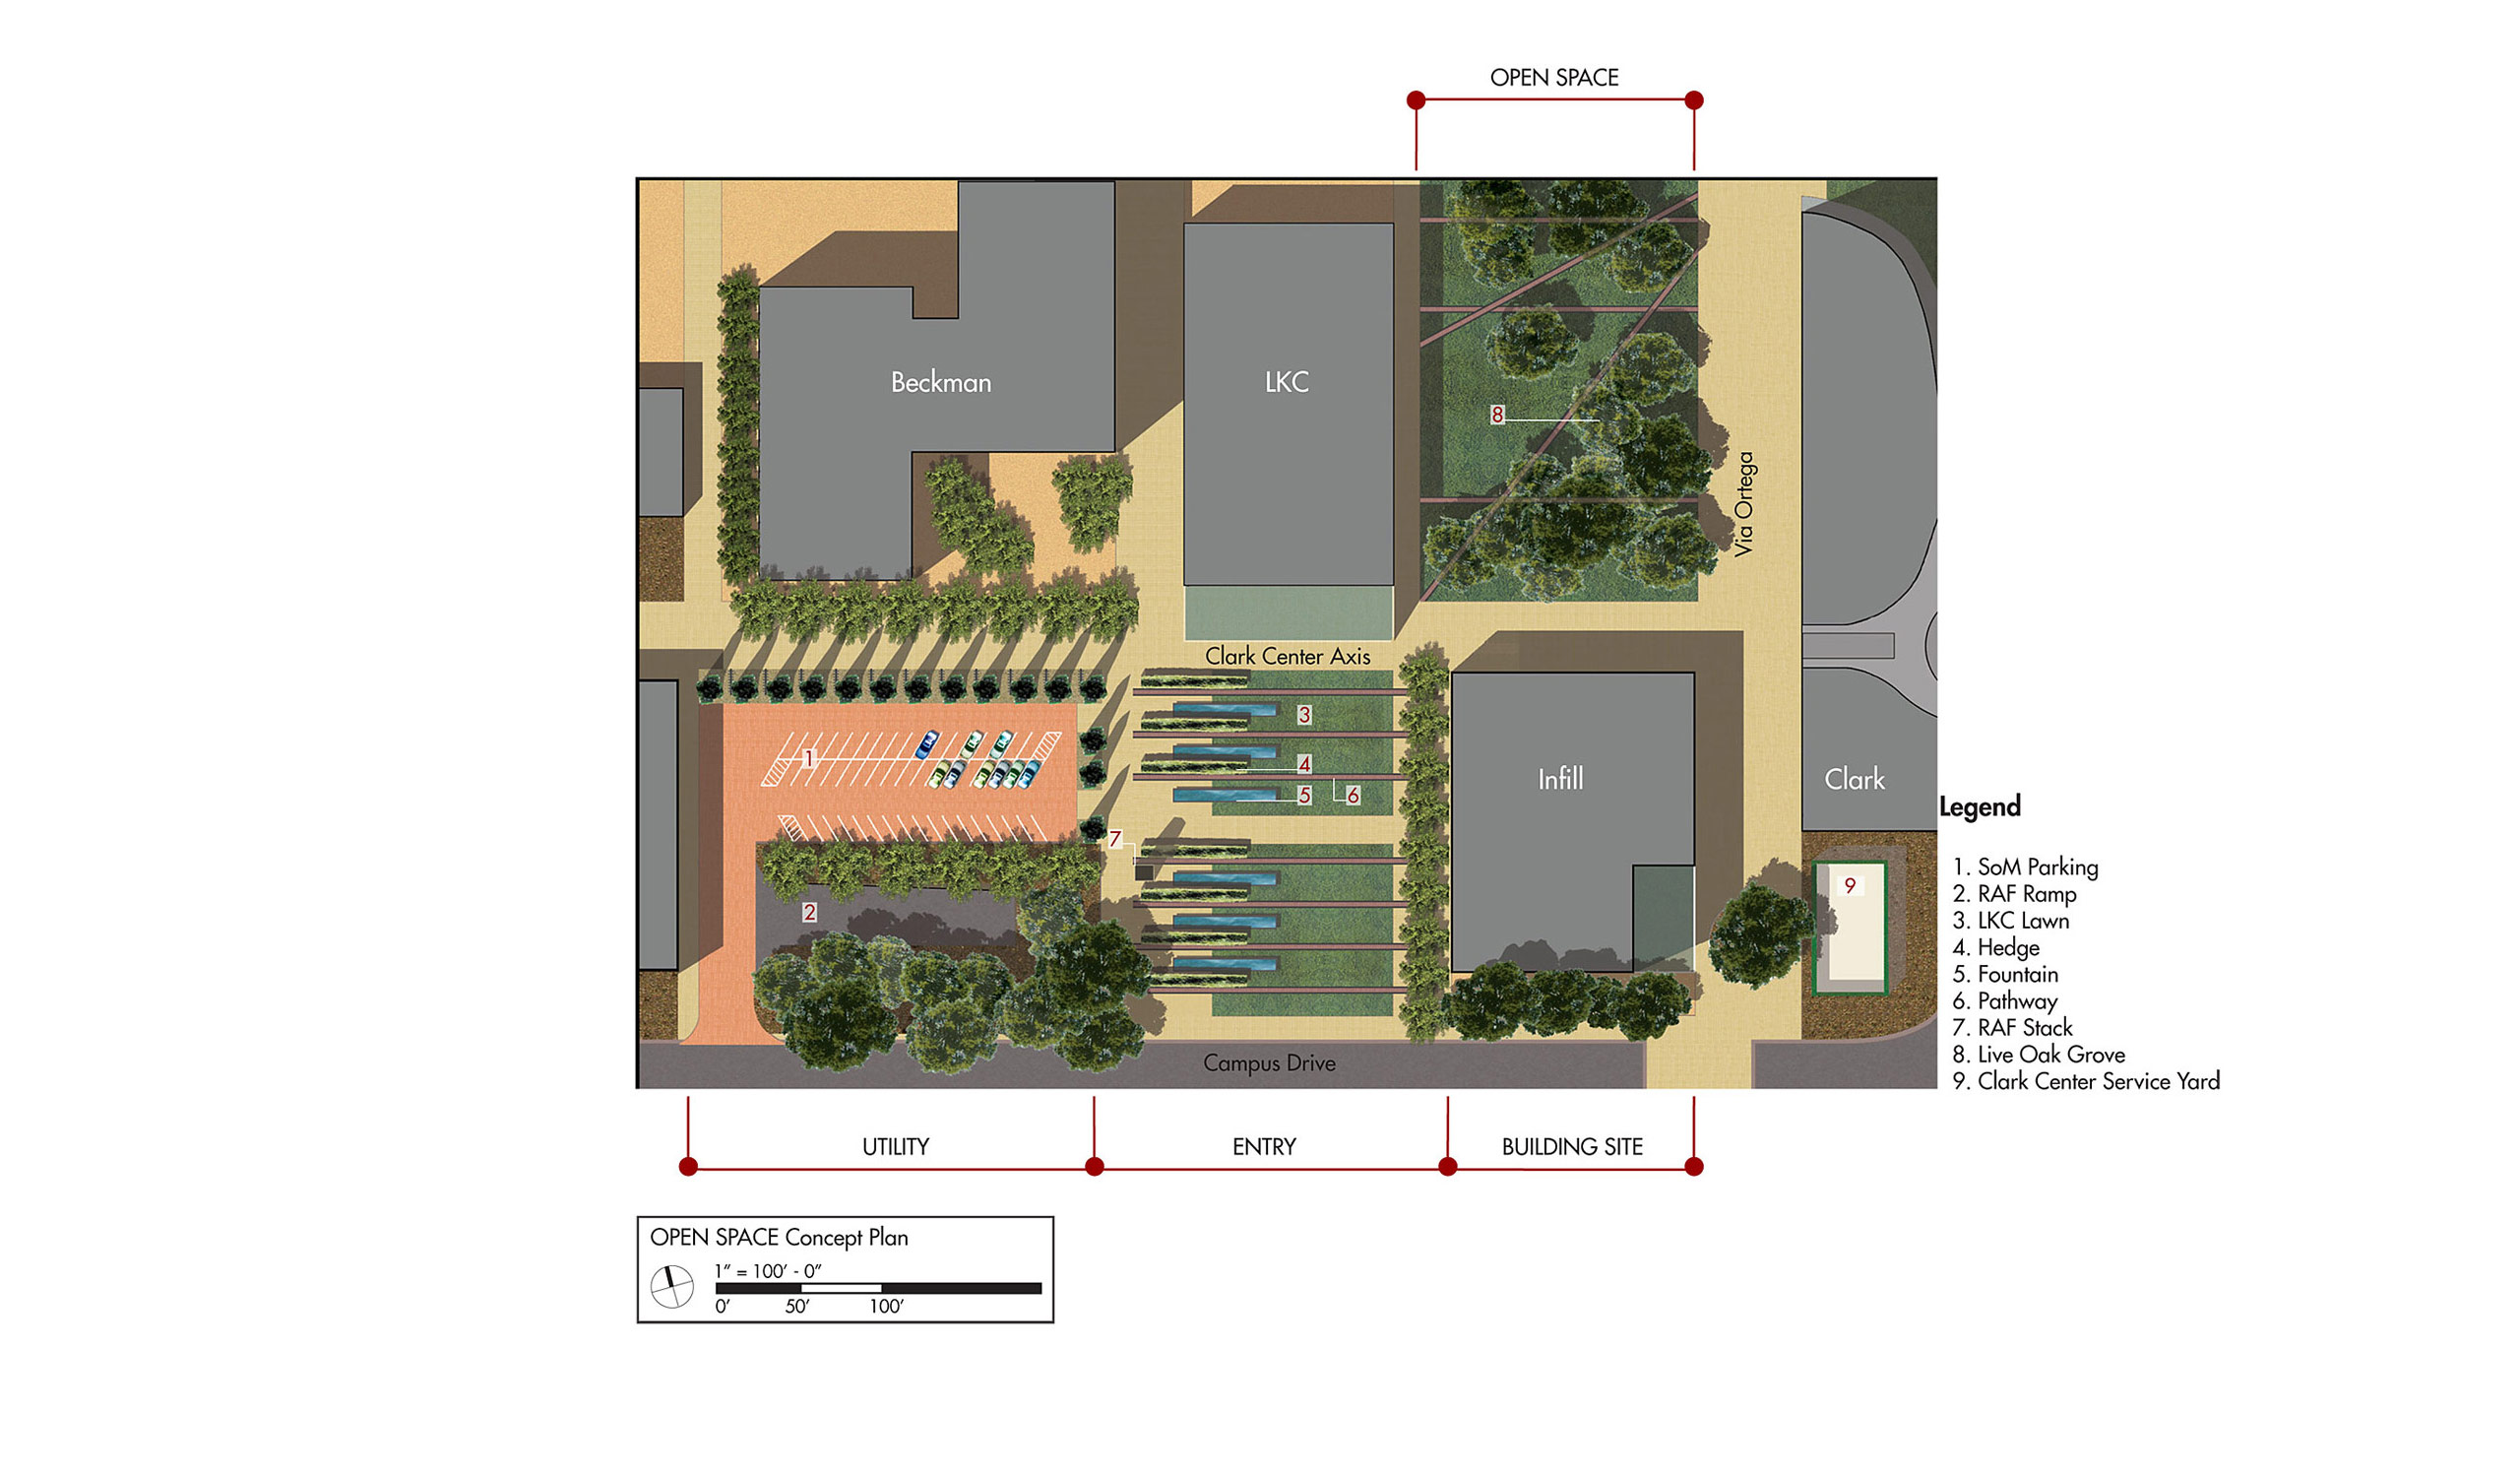 Stanford School of Medicine Master Site Plan – Stanford University image 5